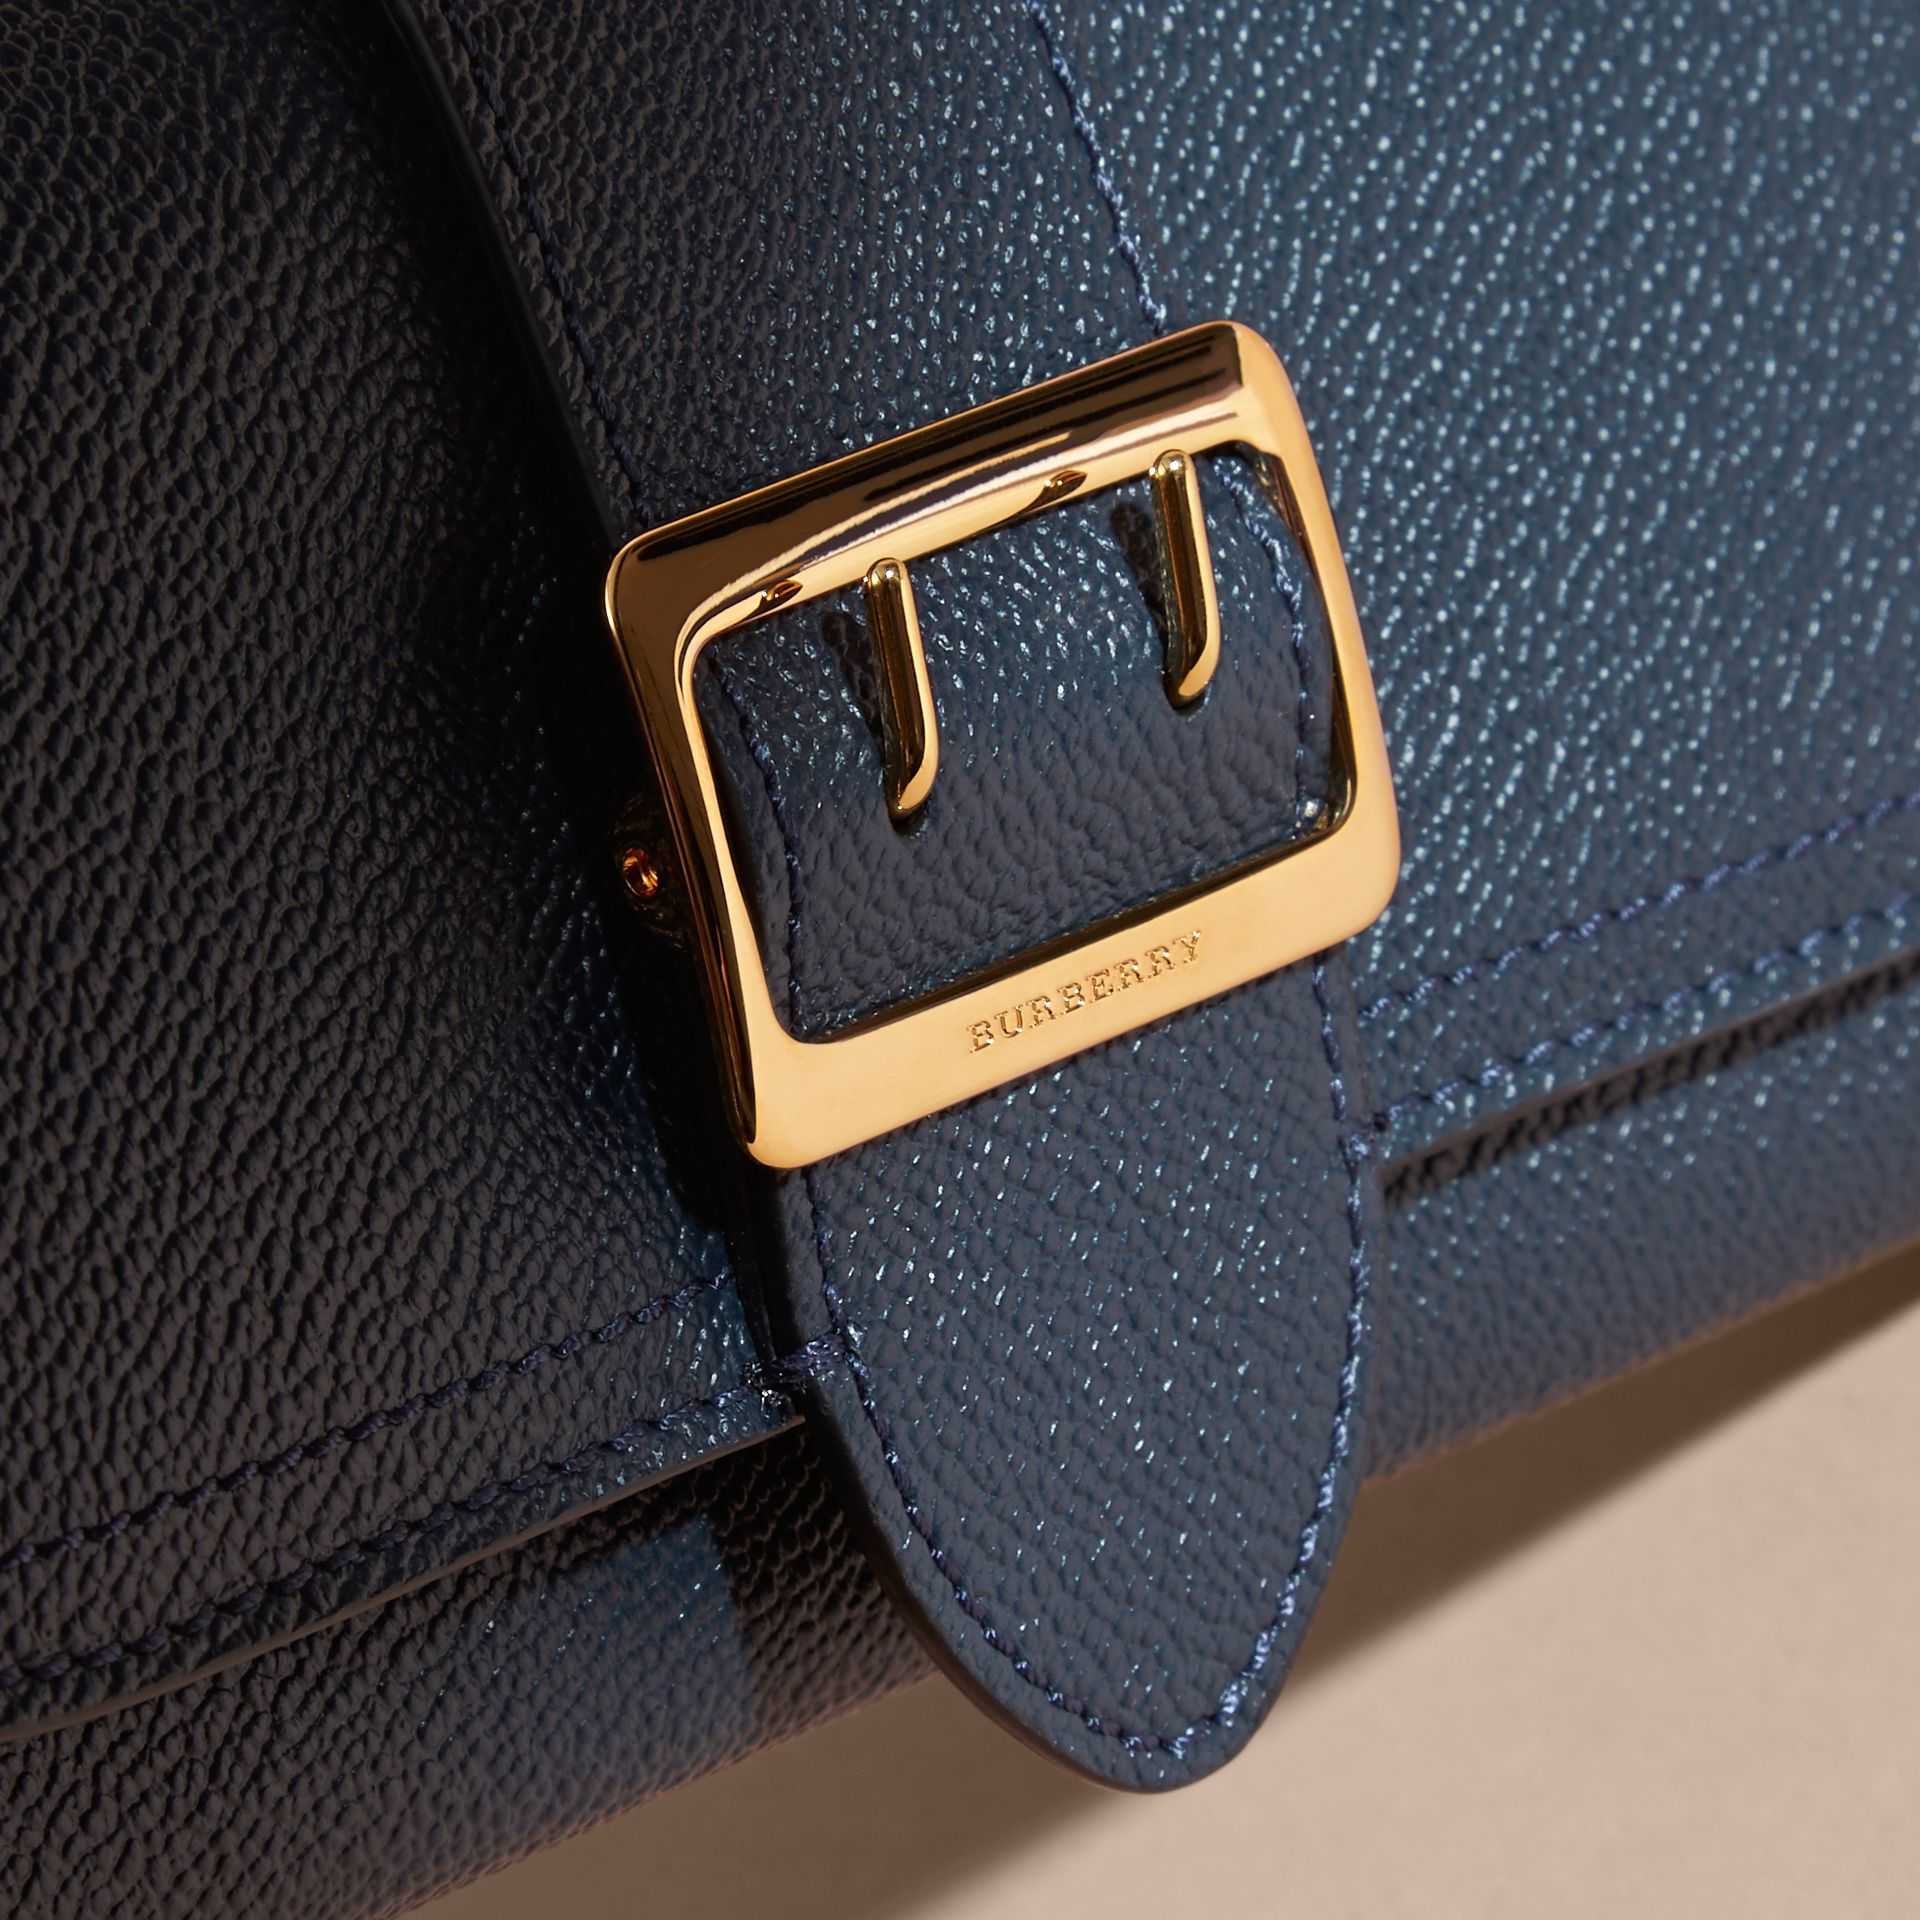 Textured Leather Continental Wallet in Blue Carbon - Women | Burberry - gallery image 4